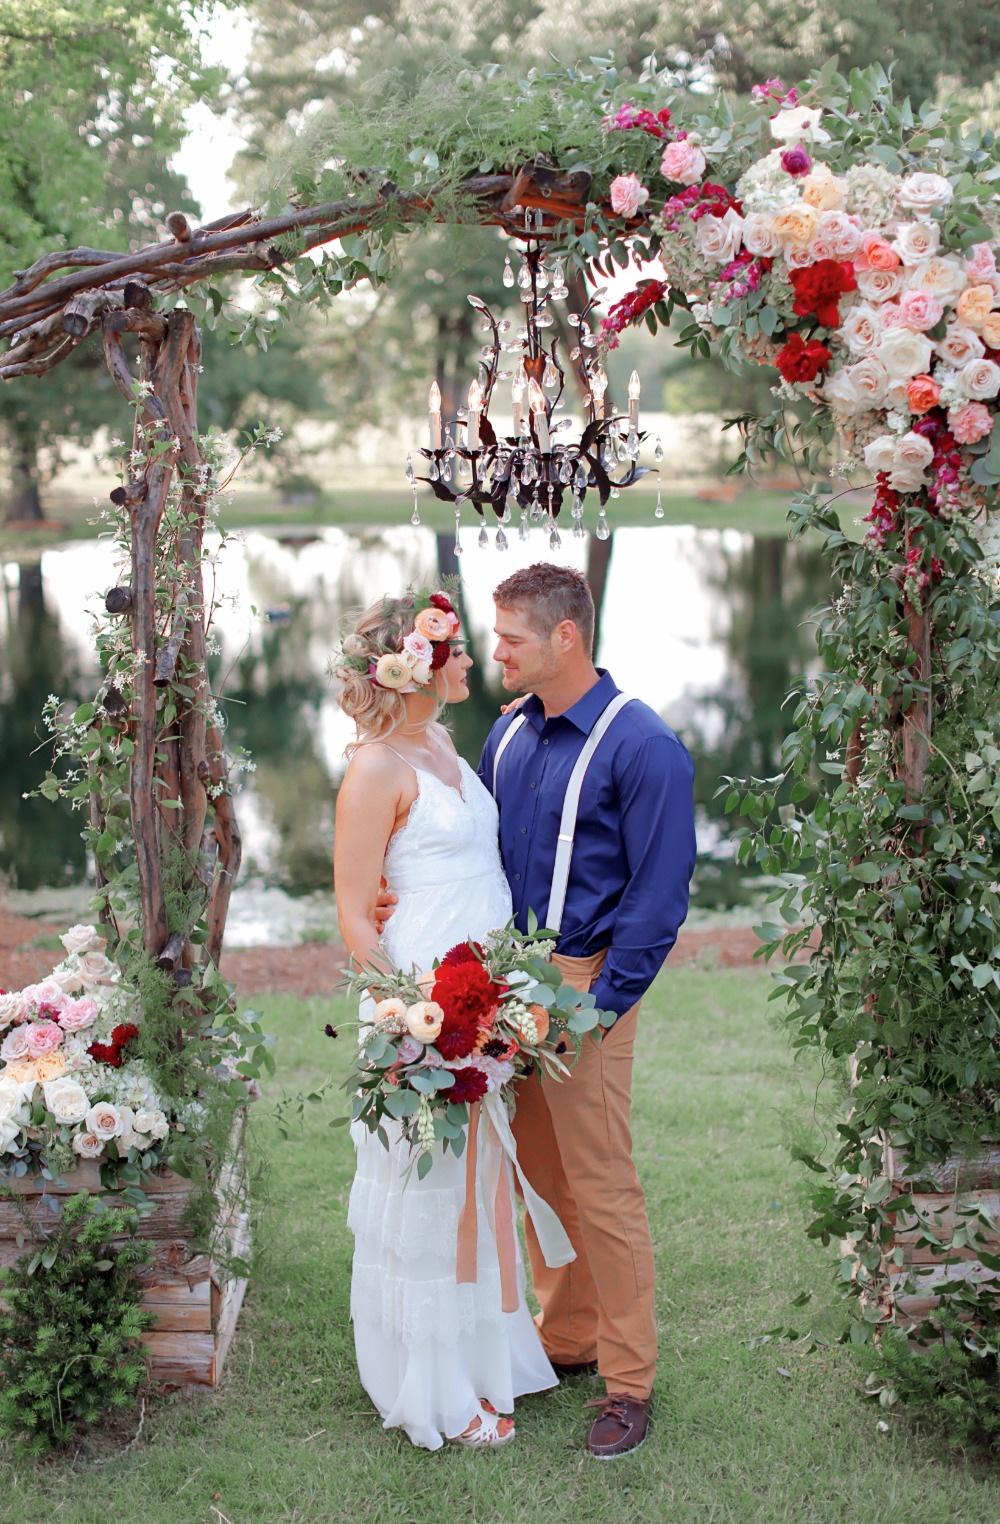 Lakeside ceremony idea with chandelier